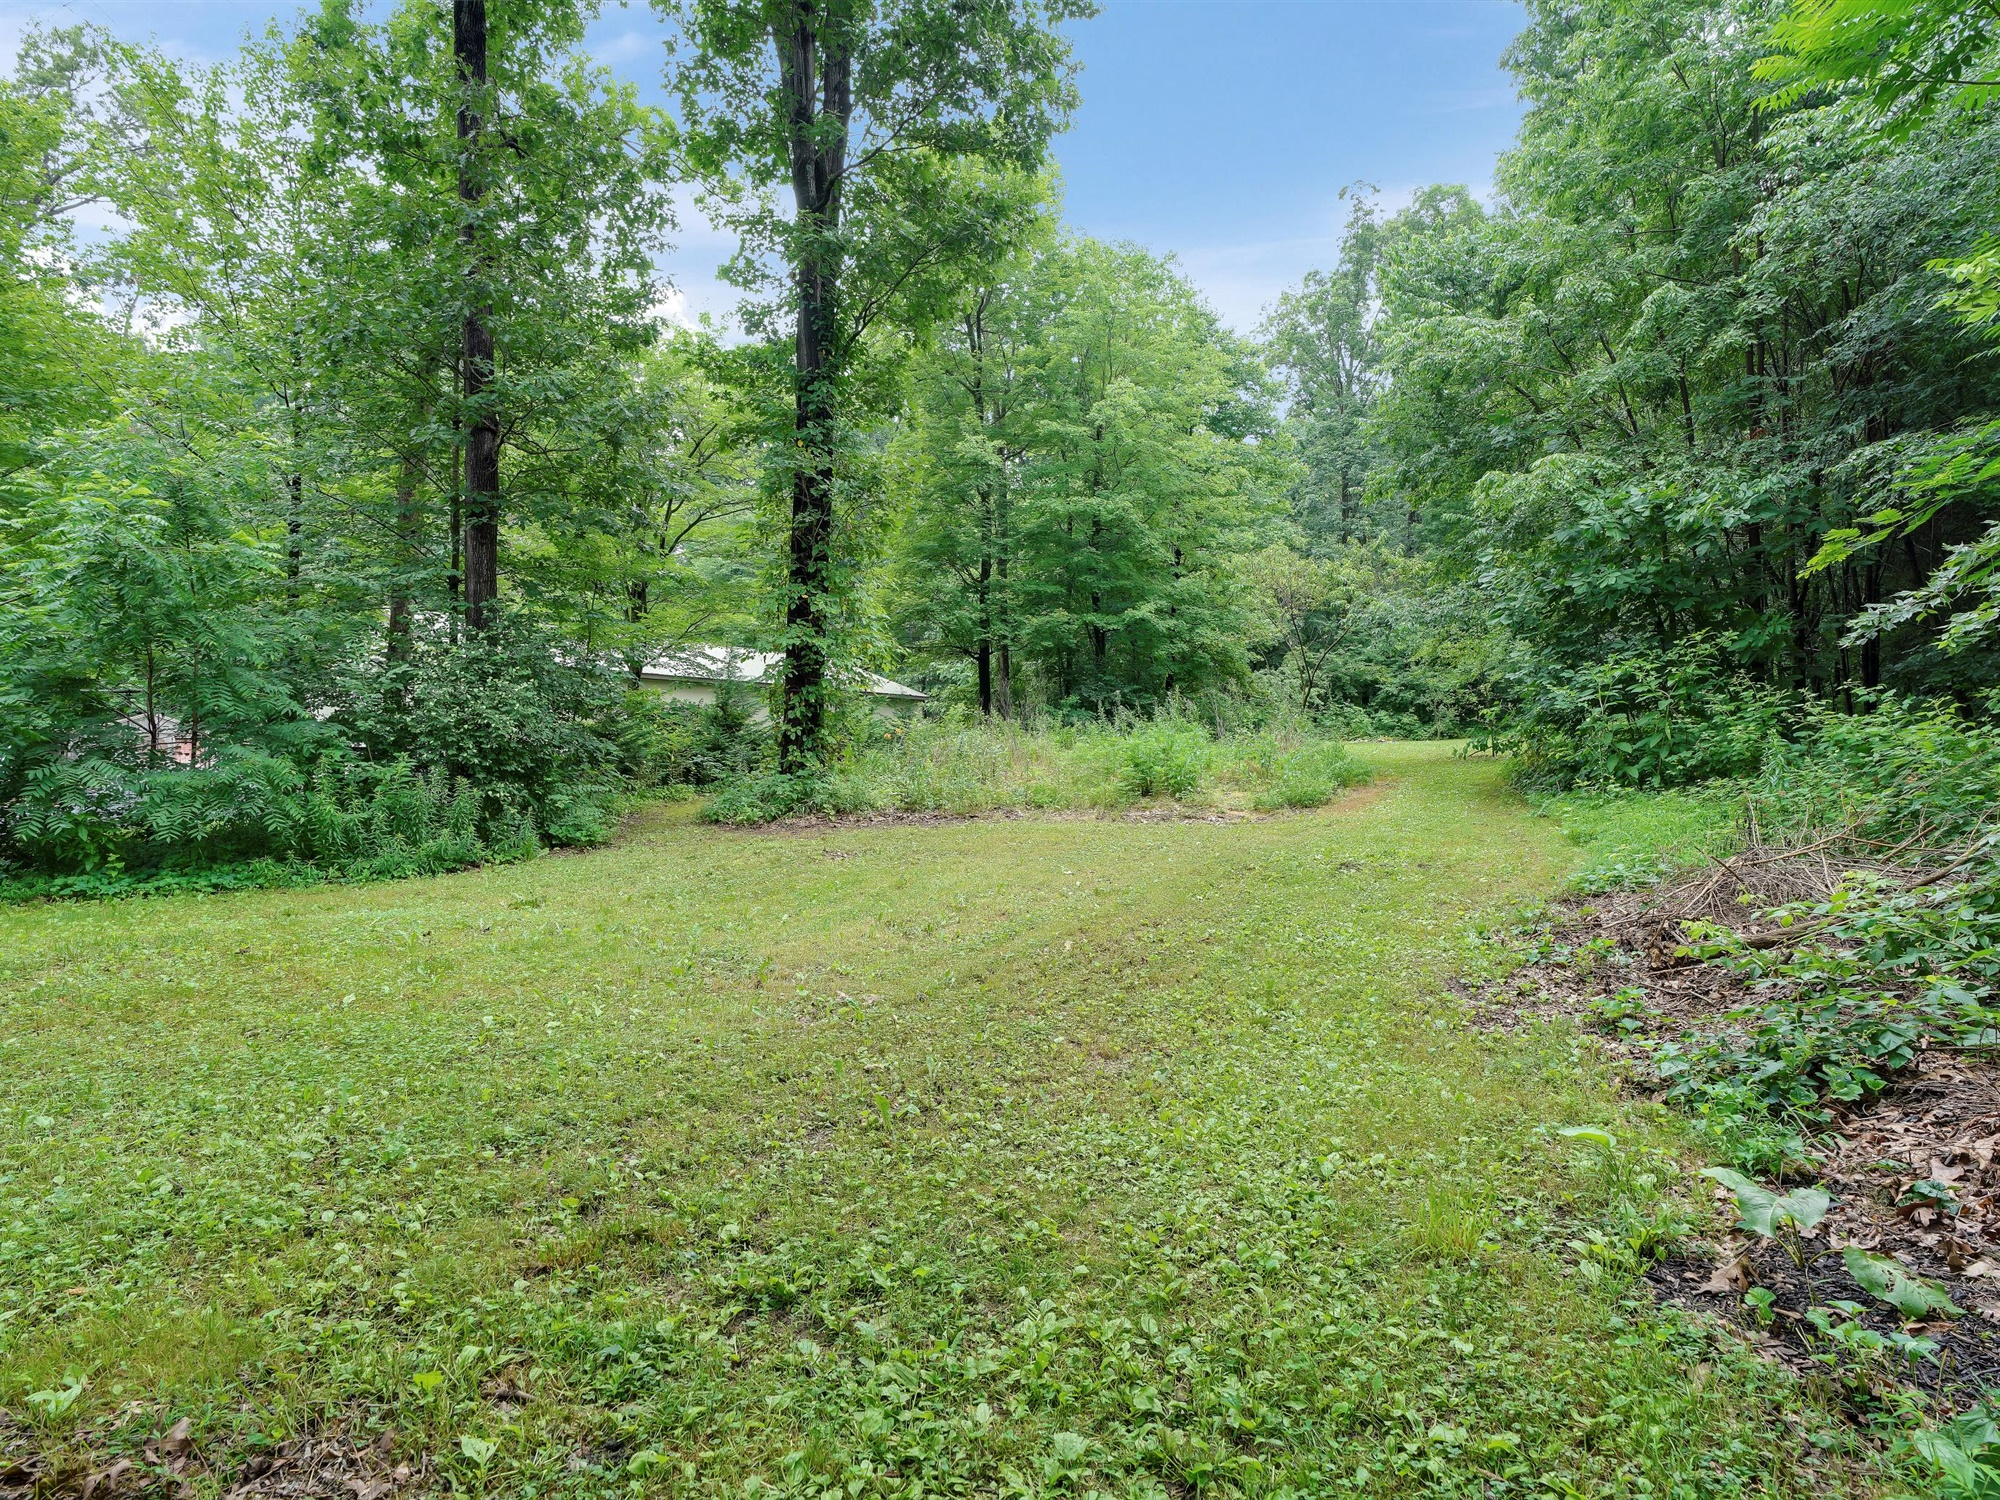 850 Prescott Dr. - wooded setting